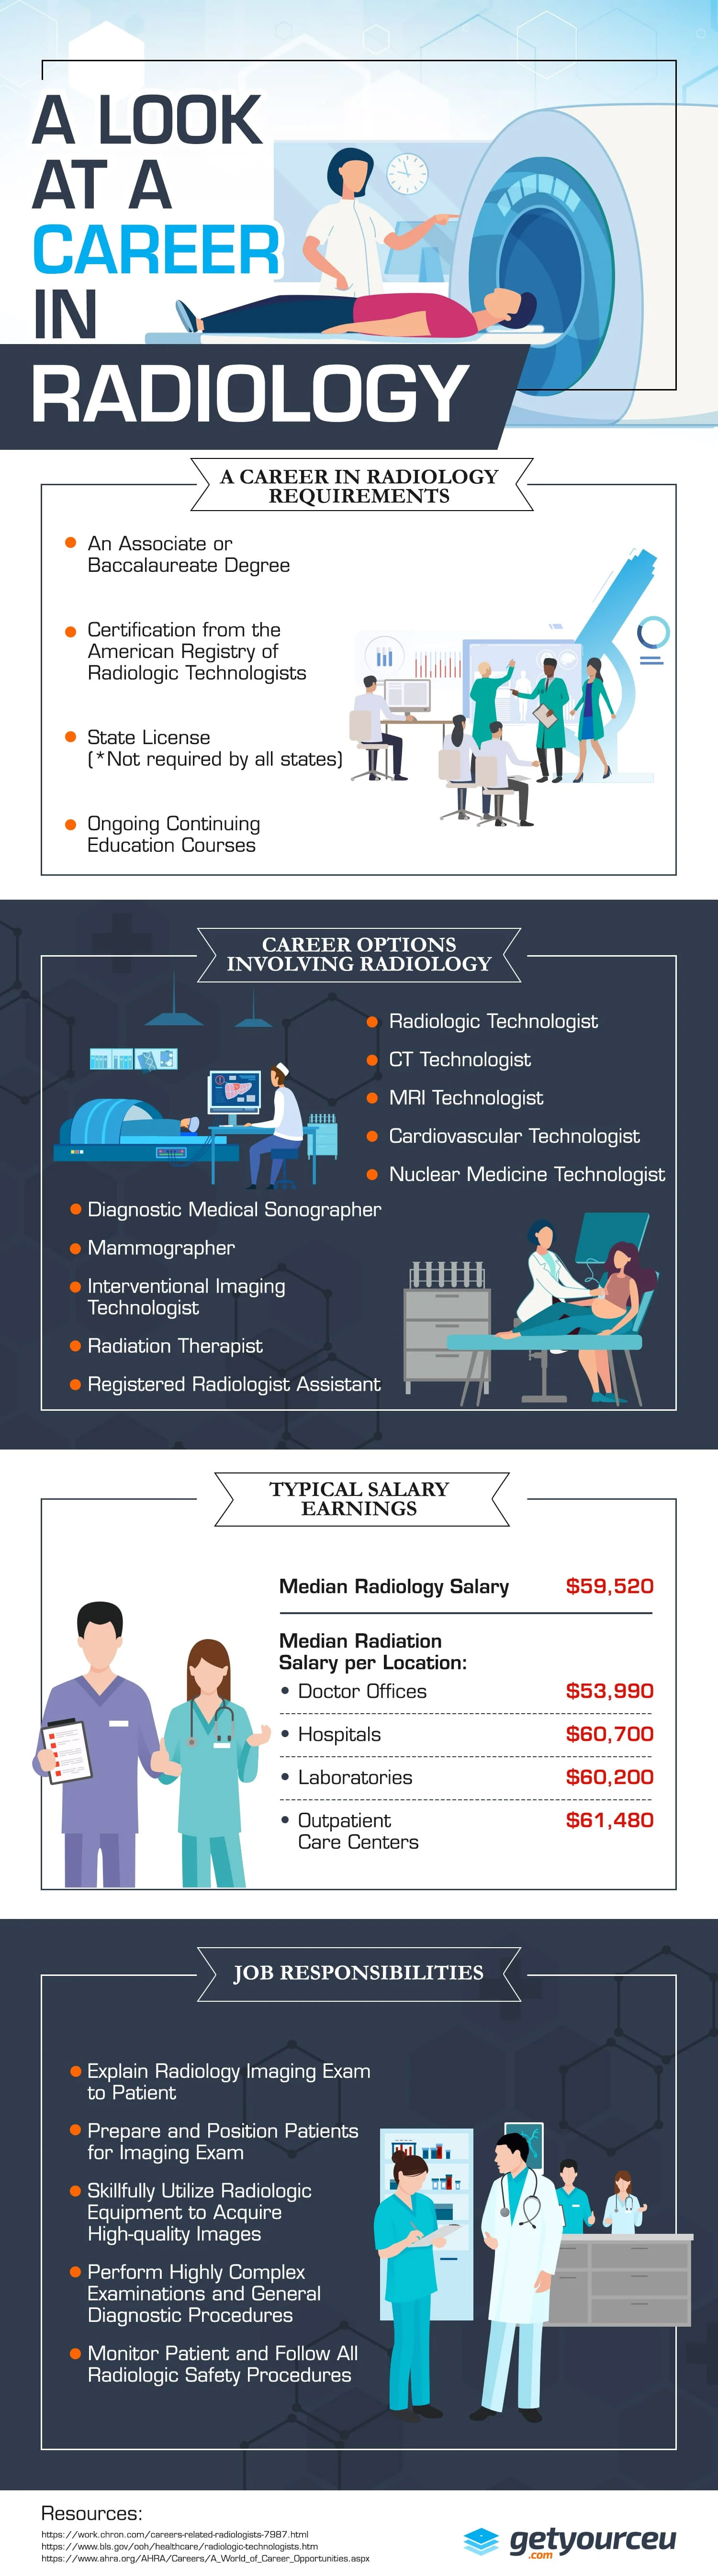 A Look at a Career in Radiology